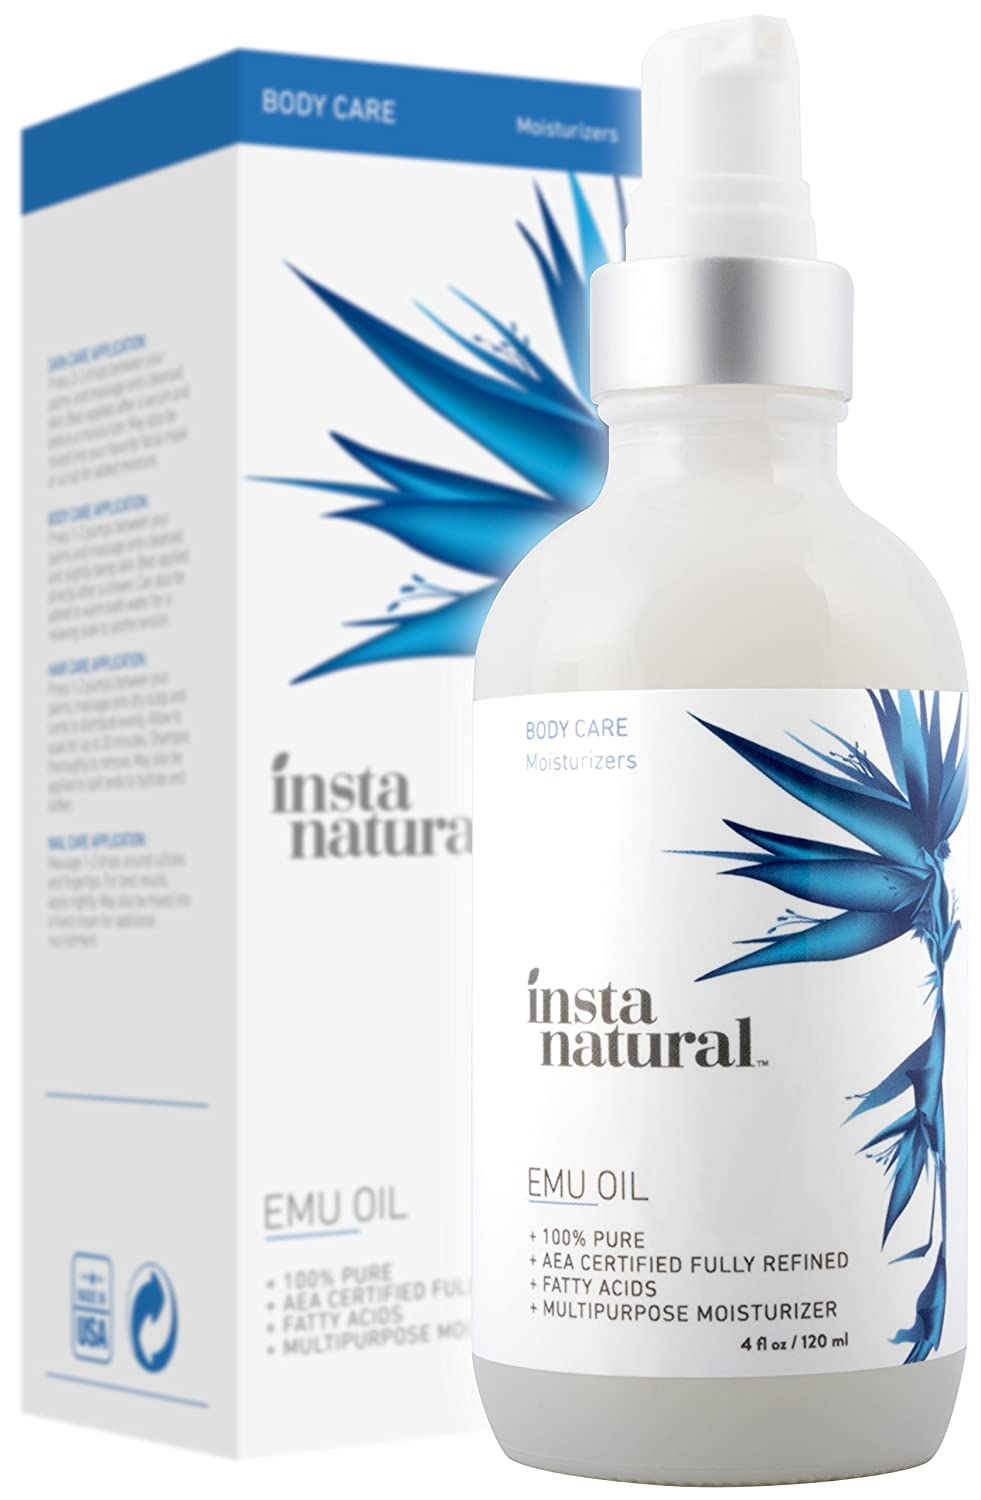 InstaNatural 100% Pure Emu Oil - For Hair Growth, Skin, Face, Stretch Marks, Scars & More - Great for After You Shampoo! - The Best Natural Cream for Eczema, Muscle & Joint Pain & Nail Beauty - 4 OZ SETAF